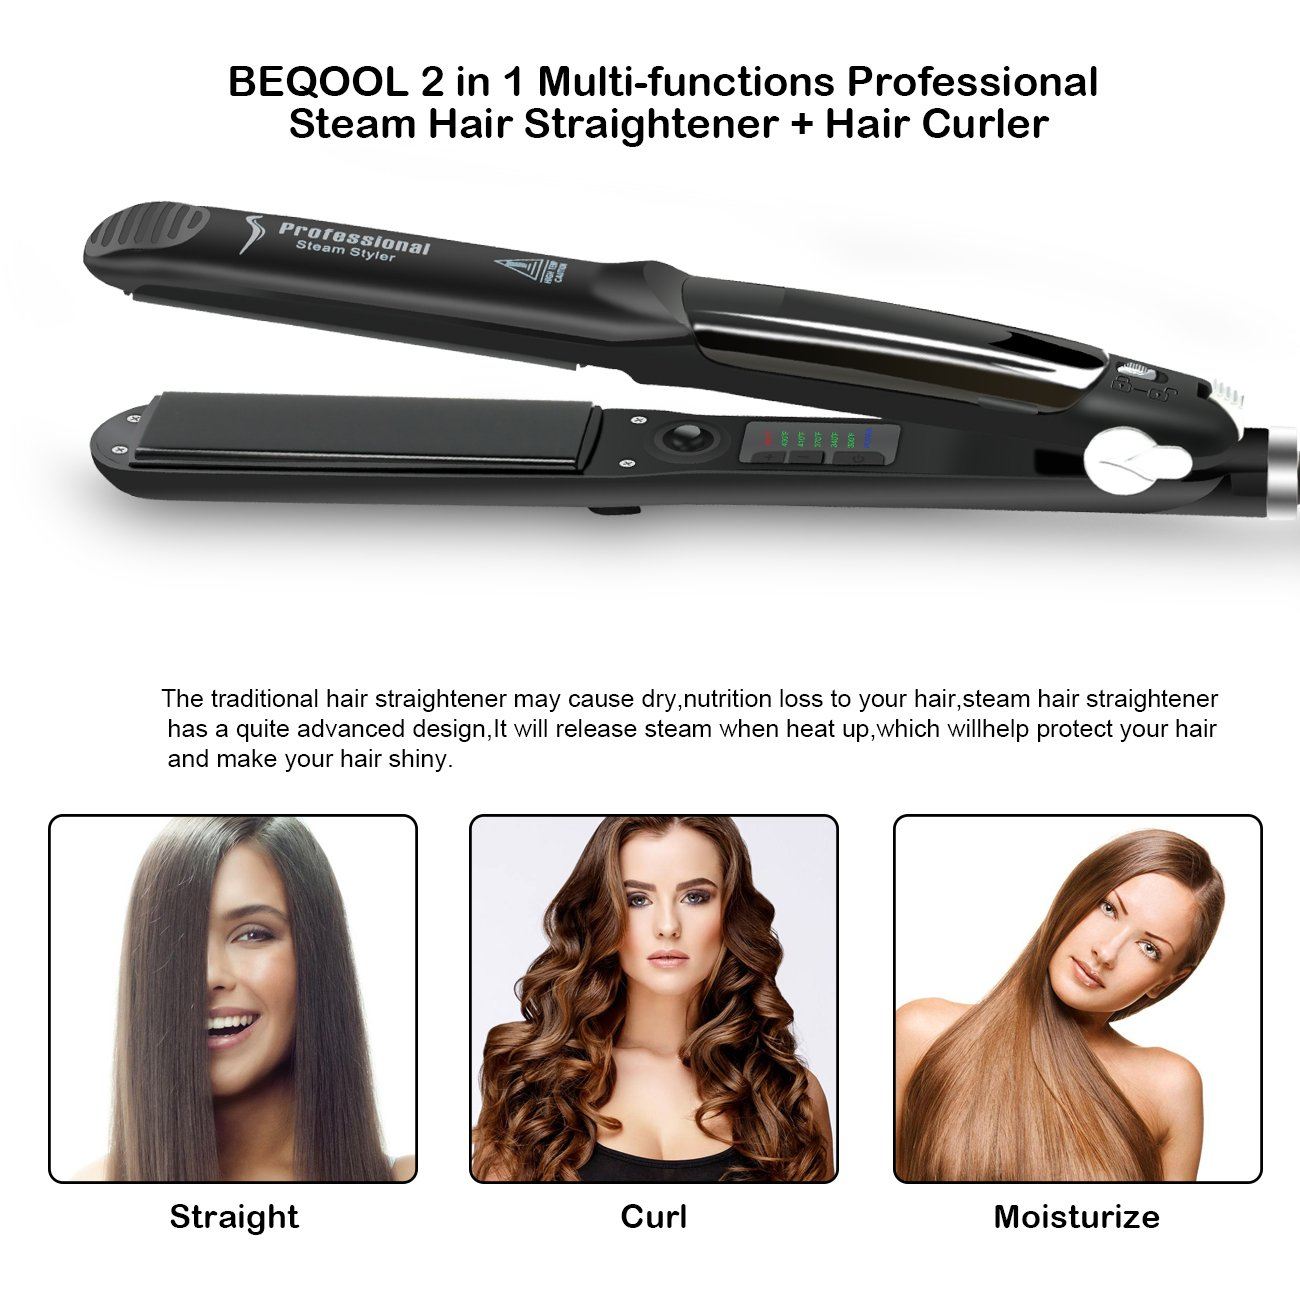 Steam Flat Iron Hair Straightener, Professional Flat Iron for hair with Vapor Heat up Fast, Digital LCD Display,Ionic Ceramic Titanium Plates, Dual Voltage steam hair straightener by BEQOOL (Image #7)